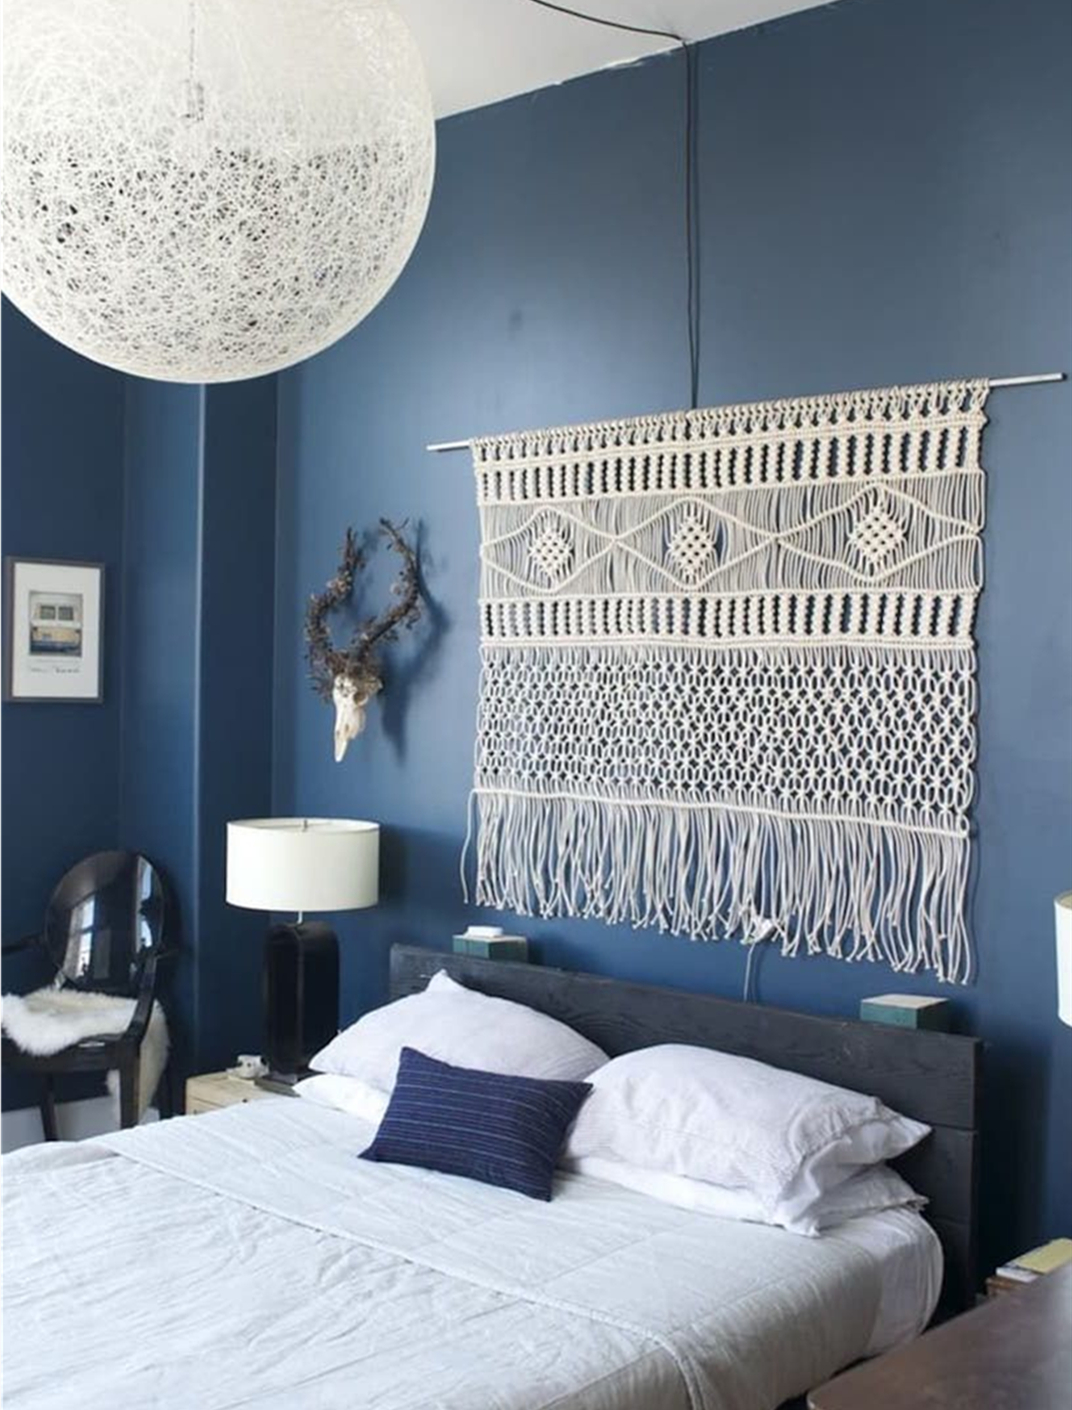 Headboard Decor